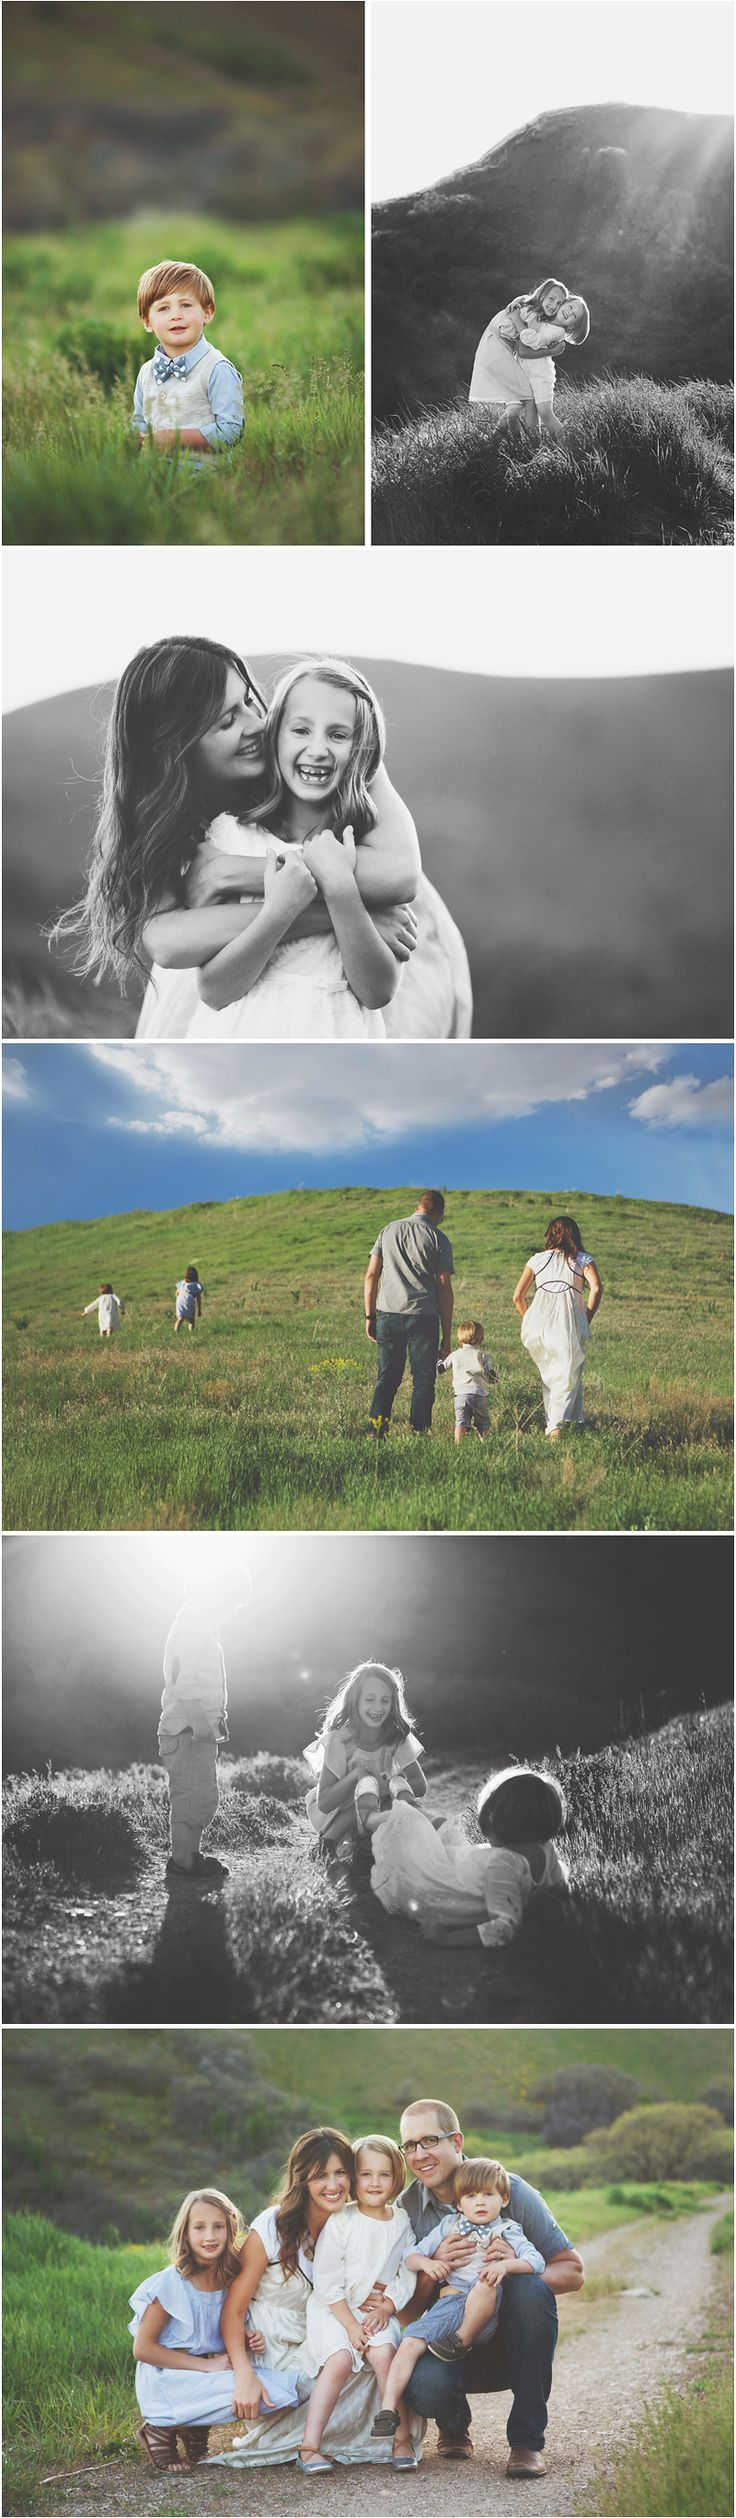 These are great ideas and will def work especially where we are taking our pics at l